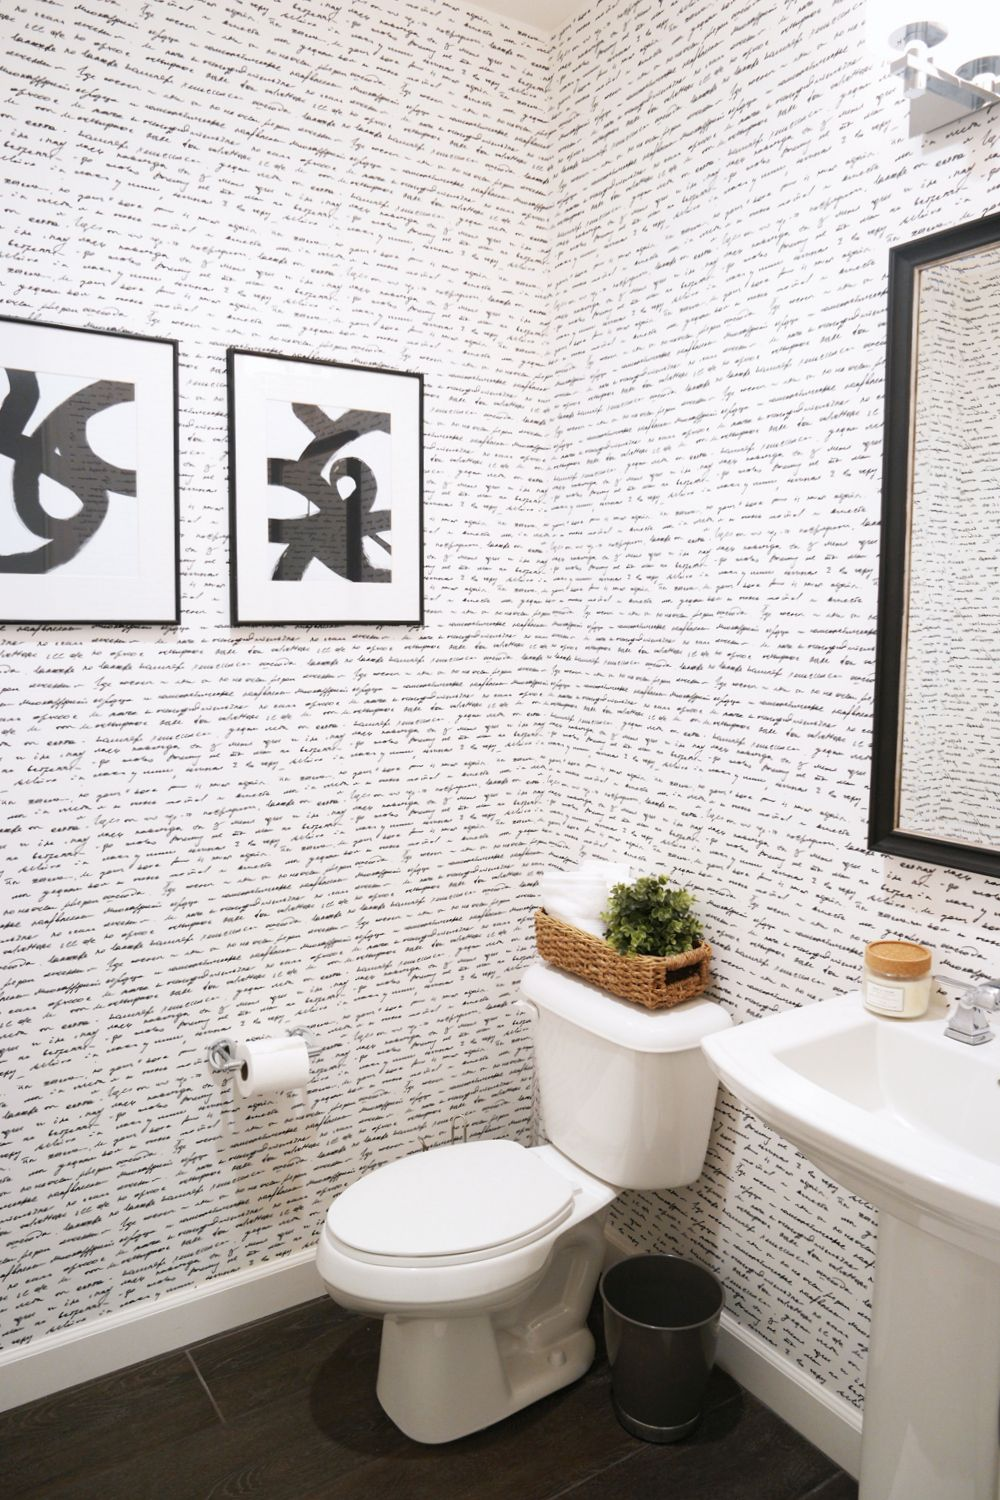 Wallpapering The Powder Room A How To Video Powder Room